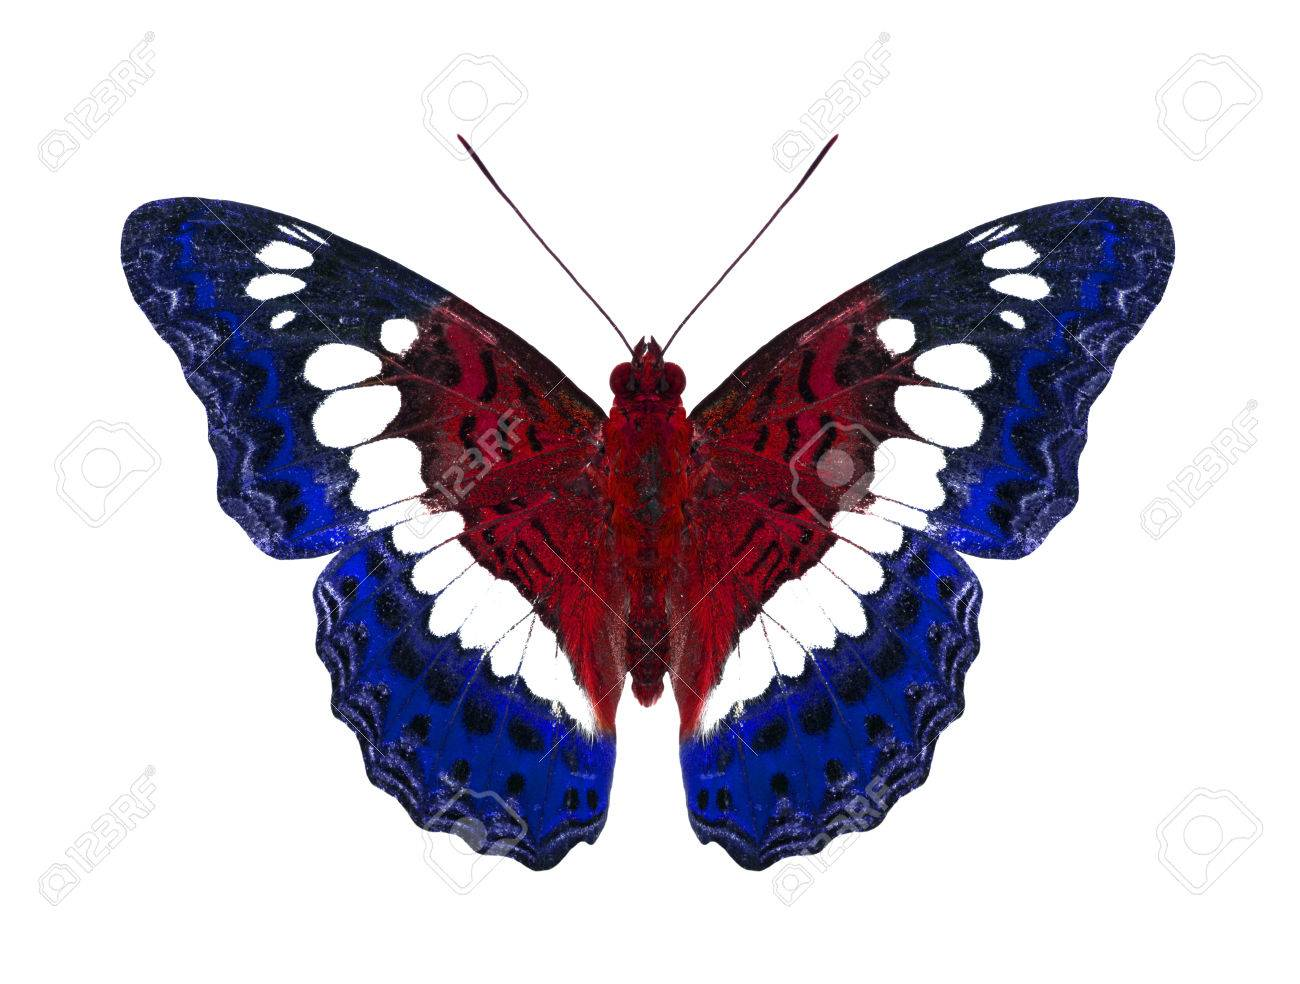 afb8650da86 Common commander butterfly in american flag colors stock photo jpg 1300x984 American  flag butterfly